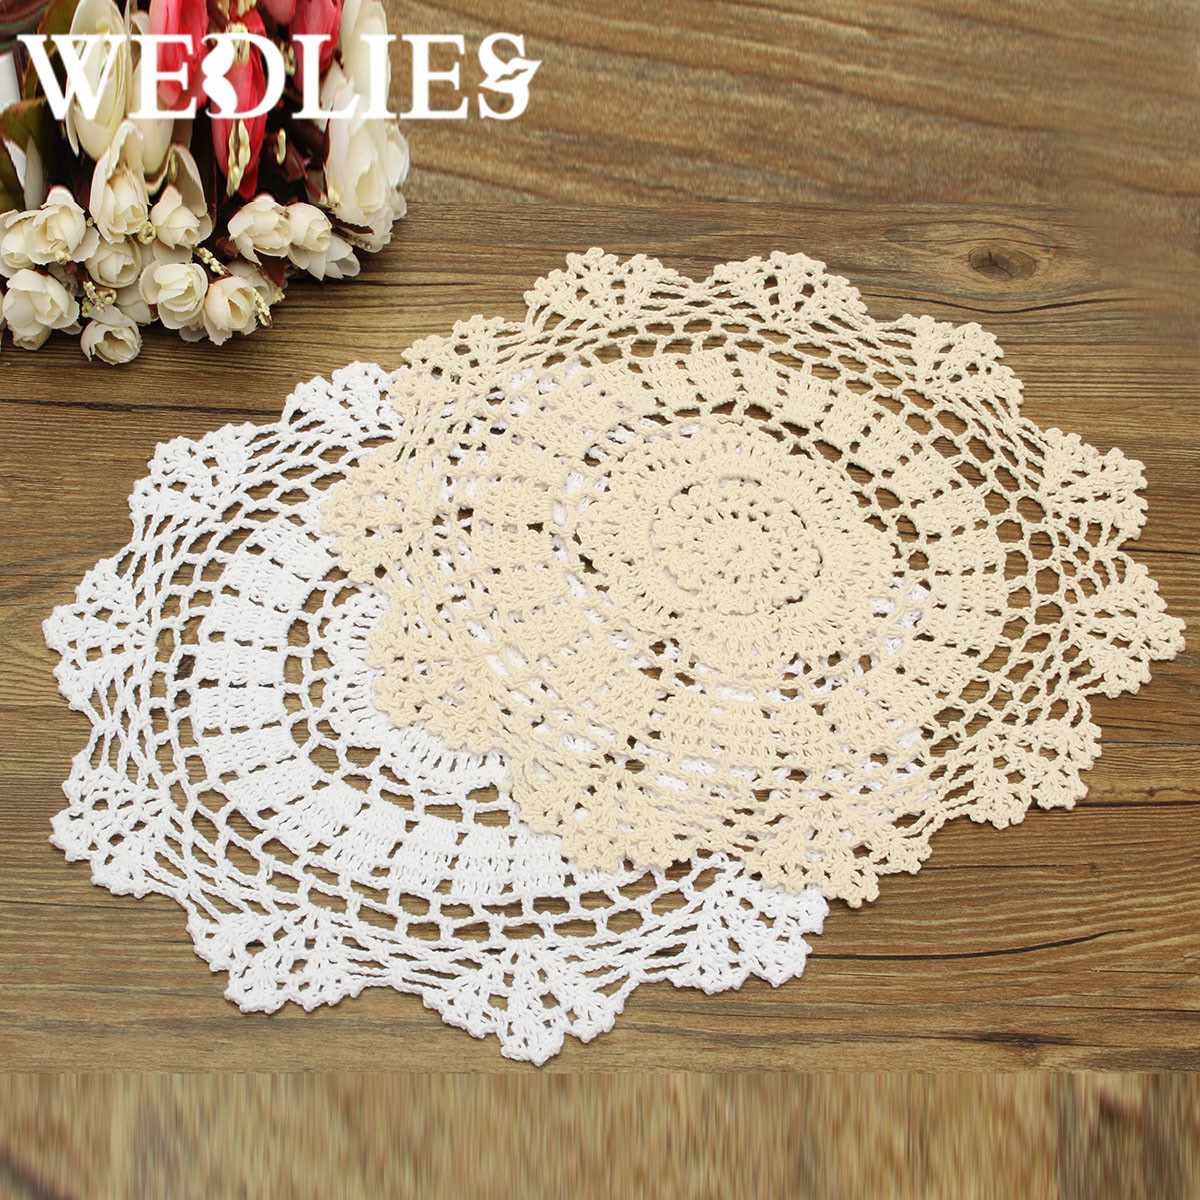 Awesome Round Retro Crochet Lace Doilies Floral Placemat Coasters Crochet Shop Of Lovely 48 Images Crochet Shop